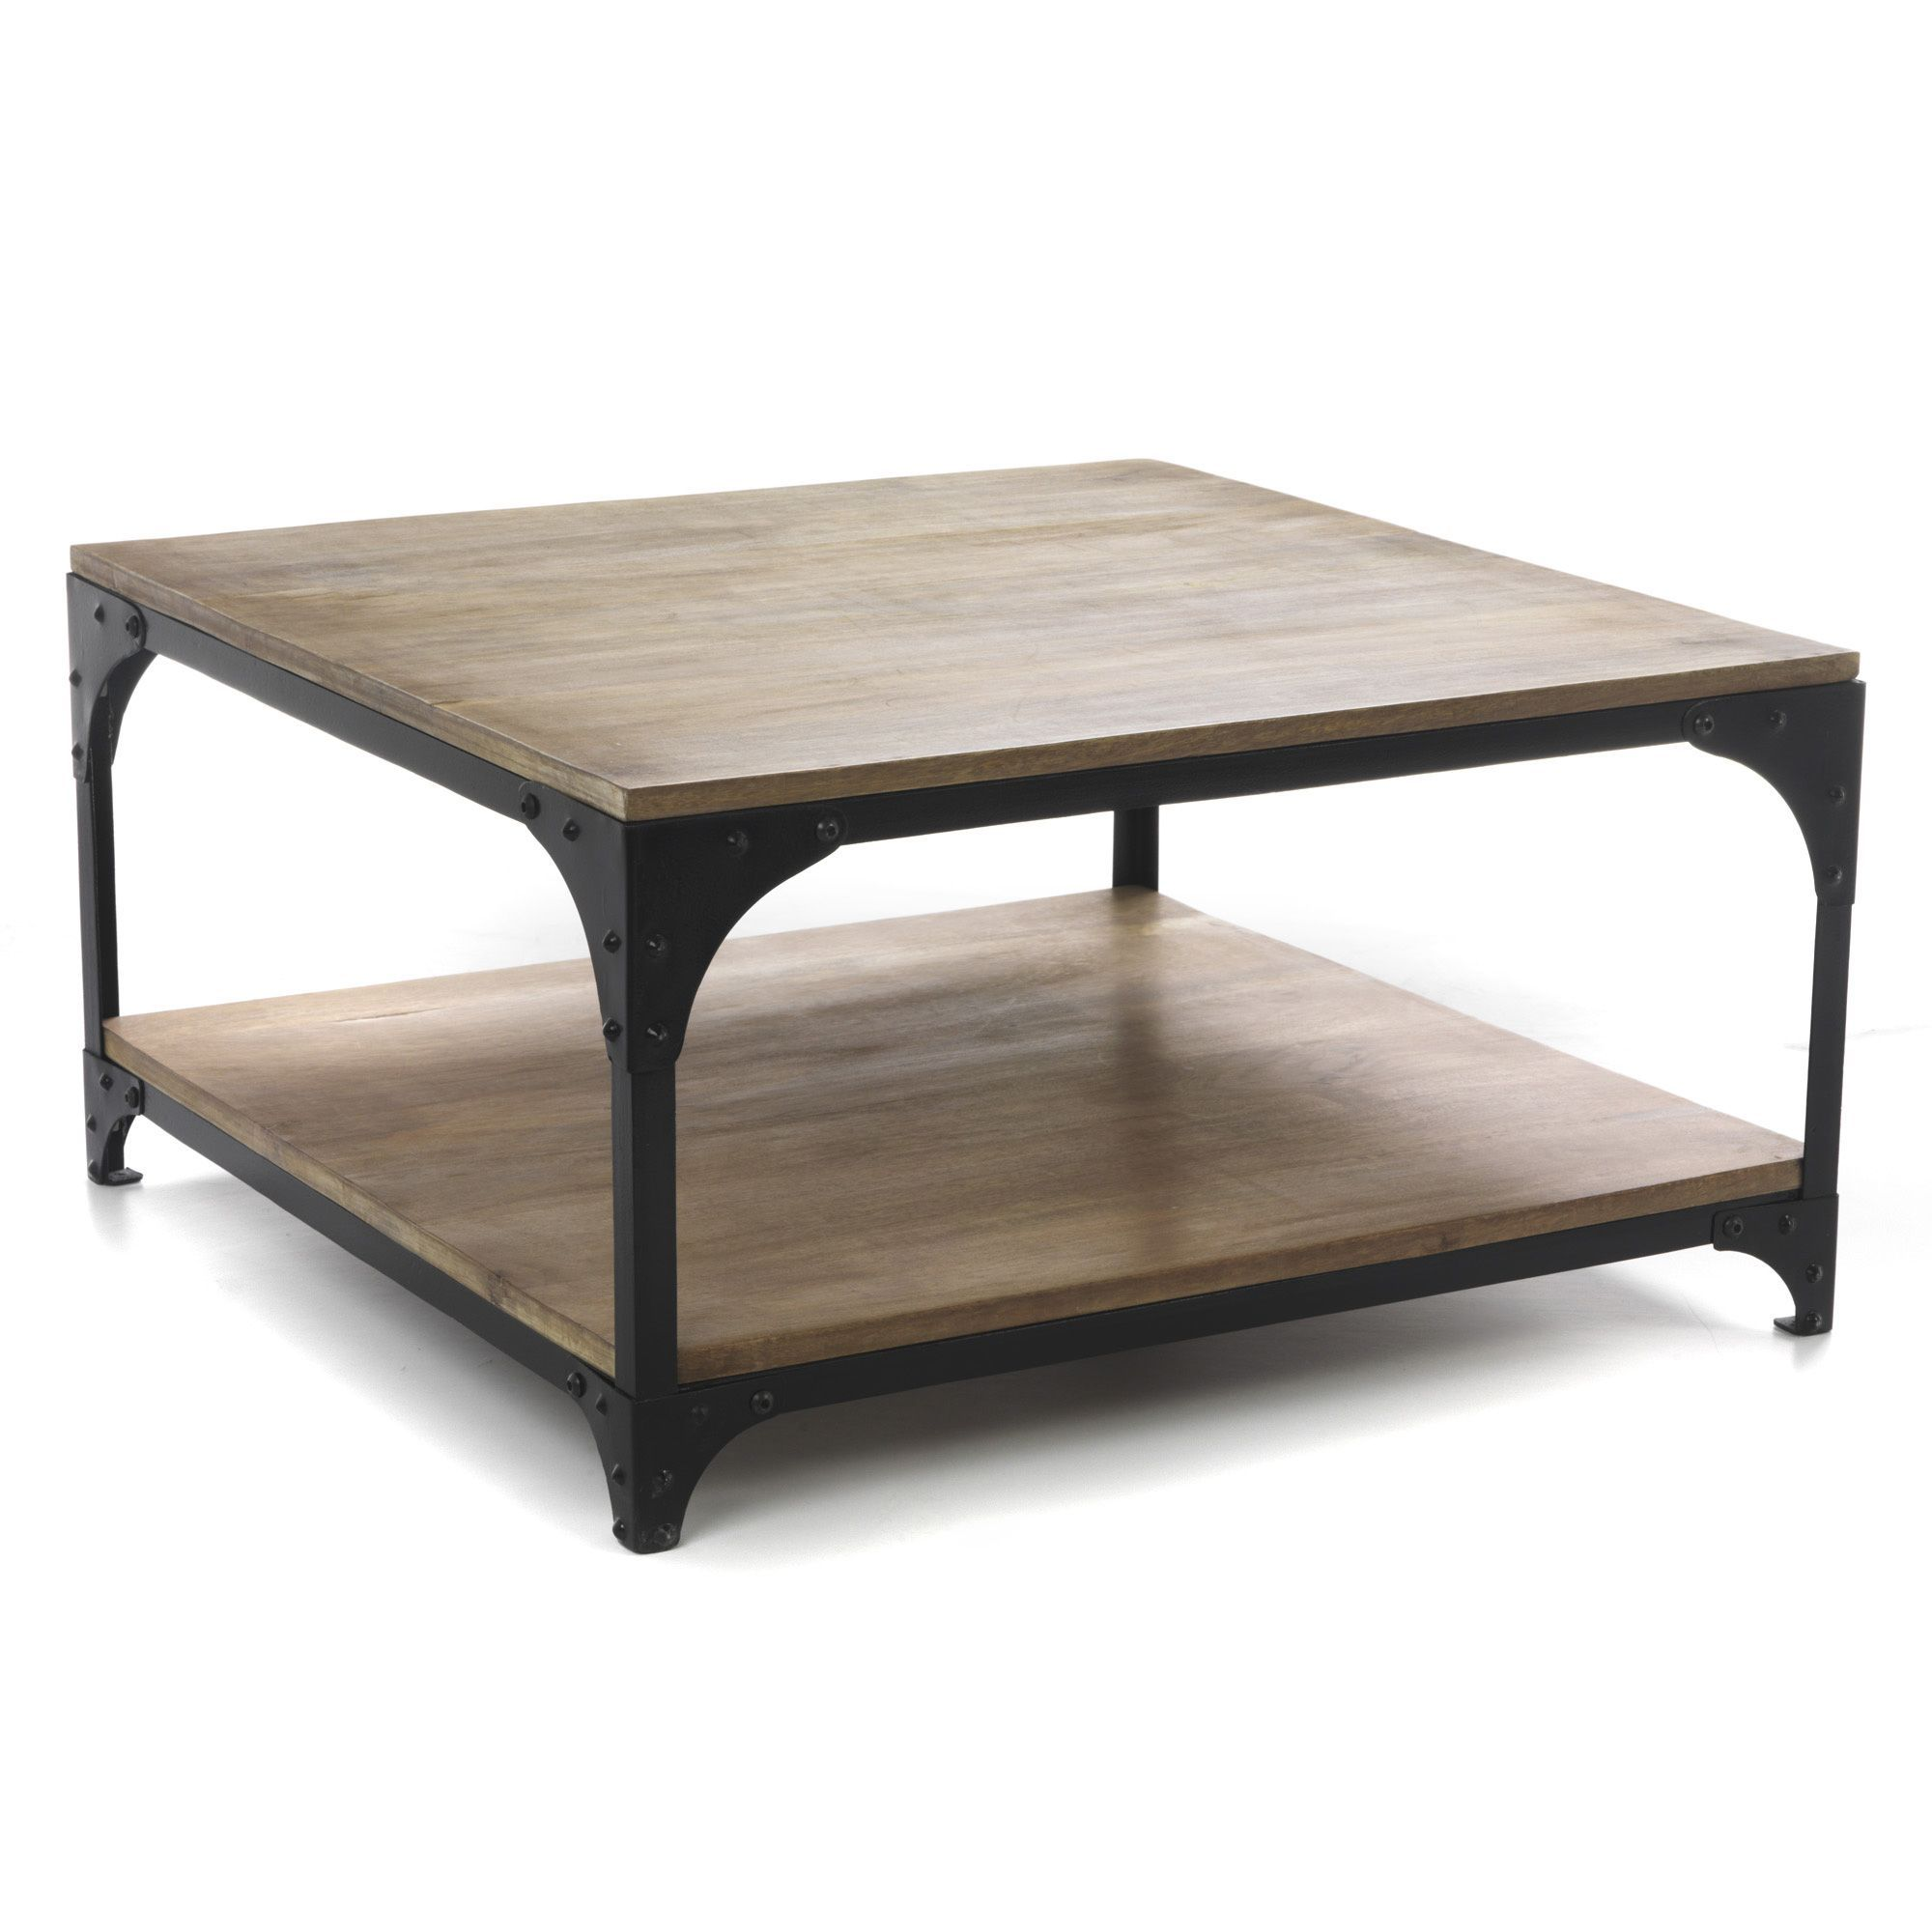 Table basse carr e industrielle naturel new ately les for Table salle a manger carree extensible